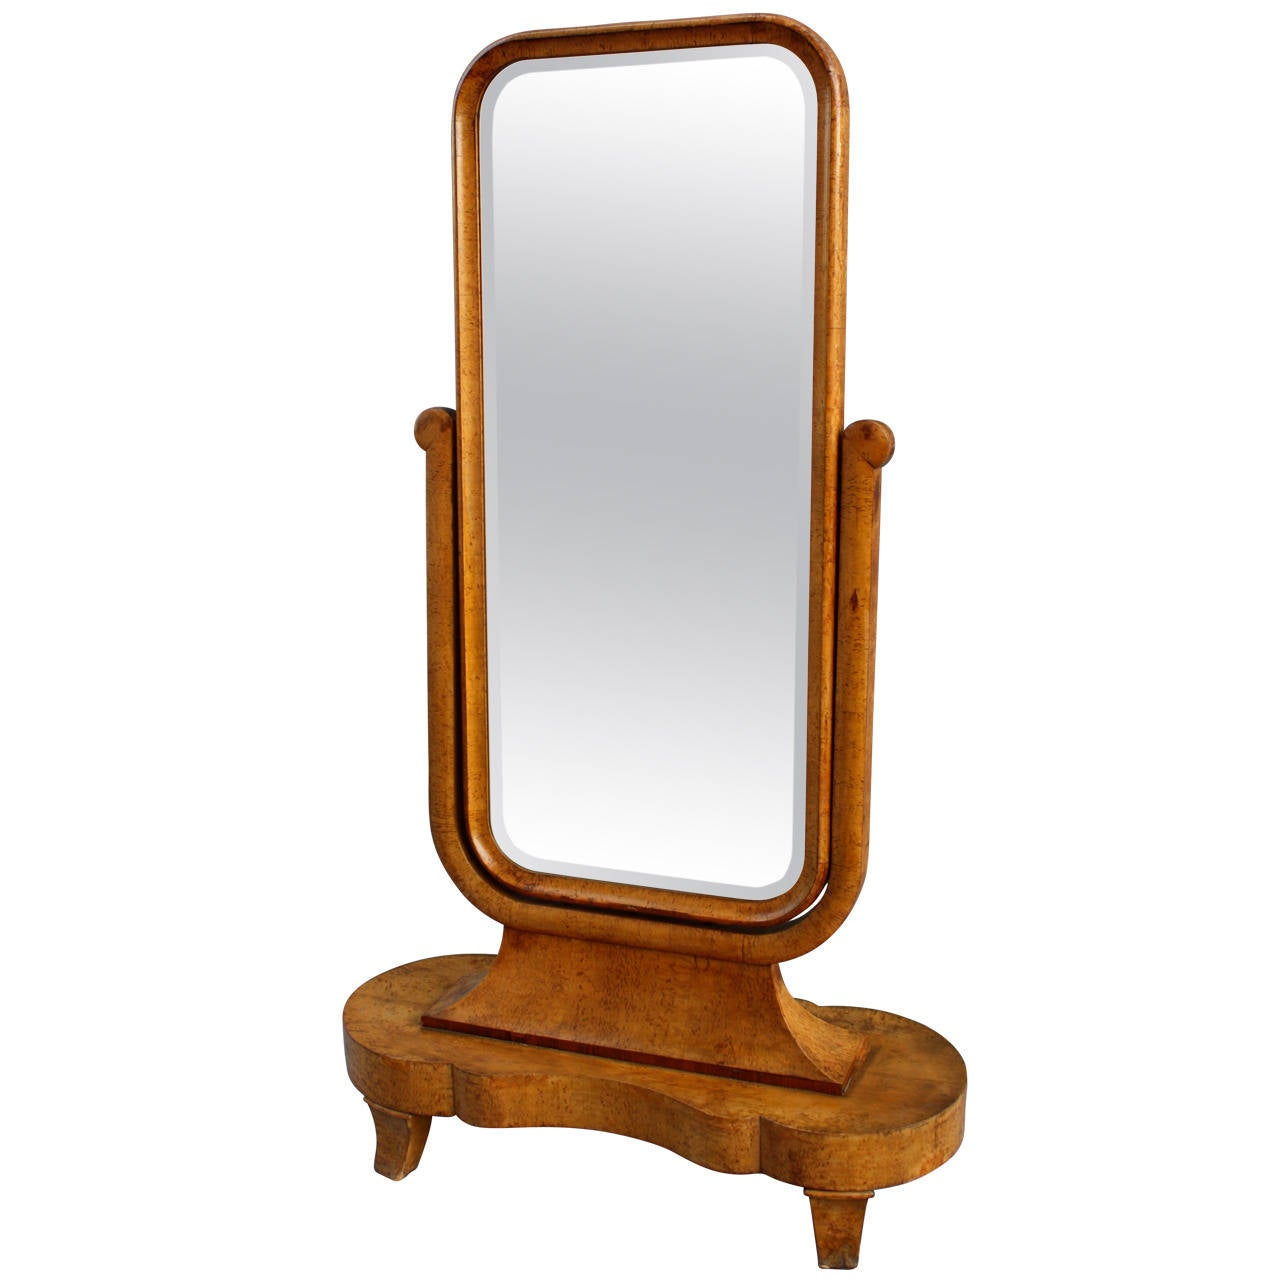 Magnificent art deco standing cheval mirror for sale at for Floor mirrors for sale